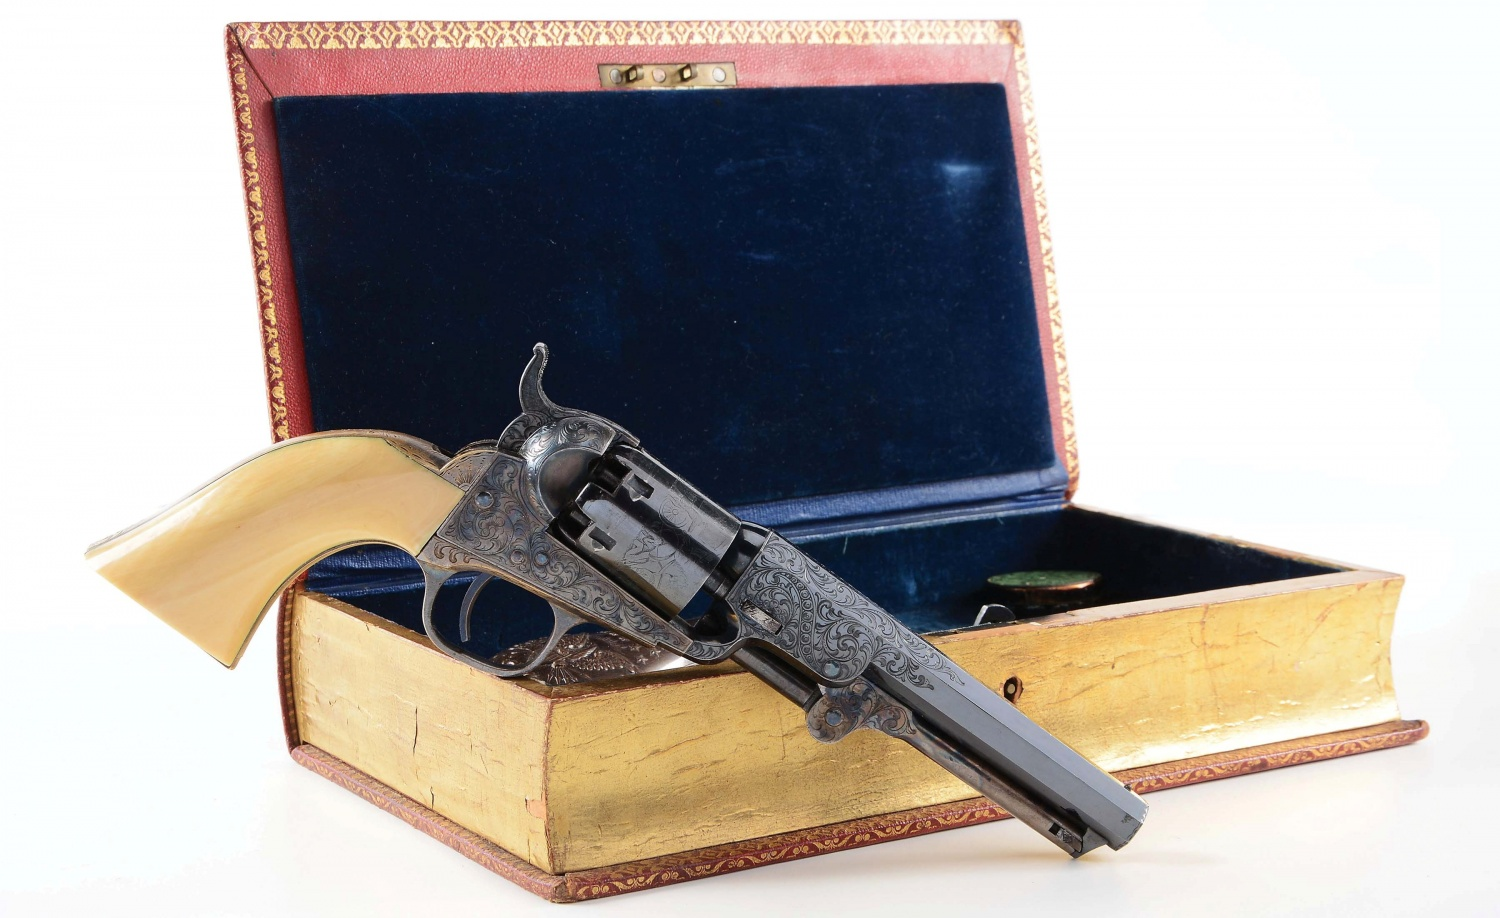 Top 5 Most Expensive Guns Sold in the Past MORPHY Auction Book-Case Revolver (8)